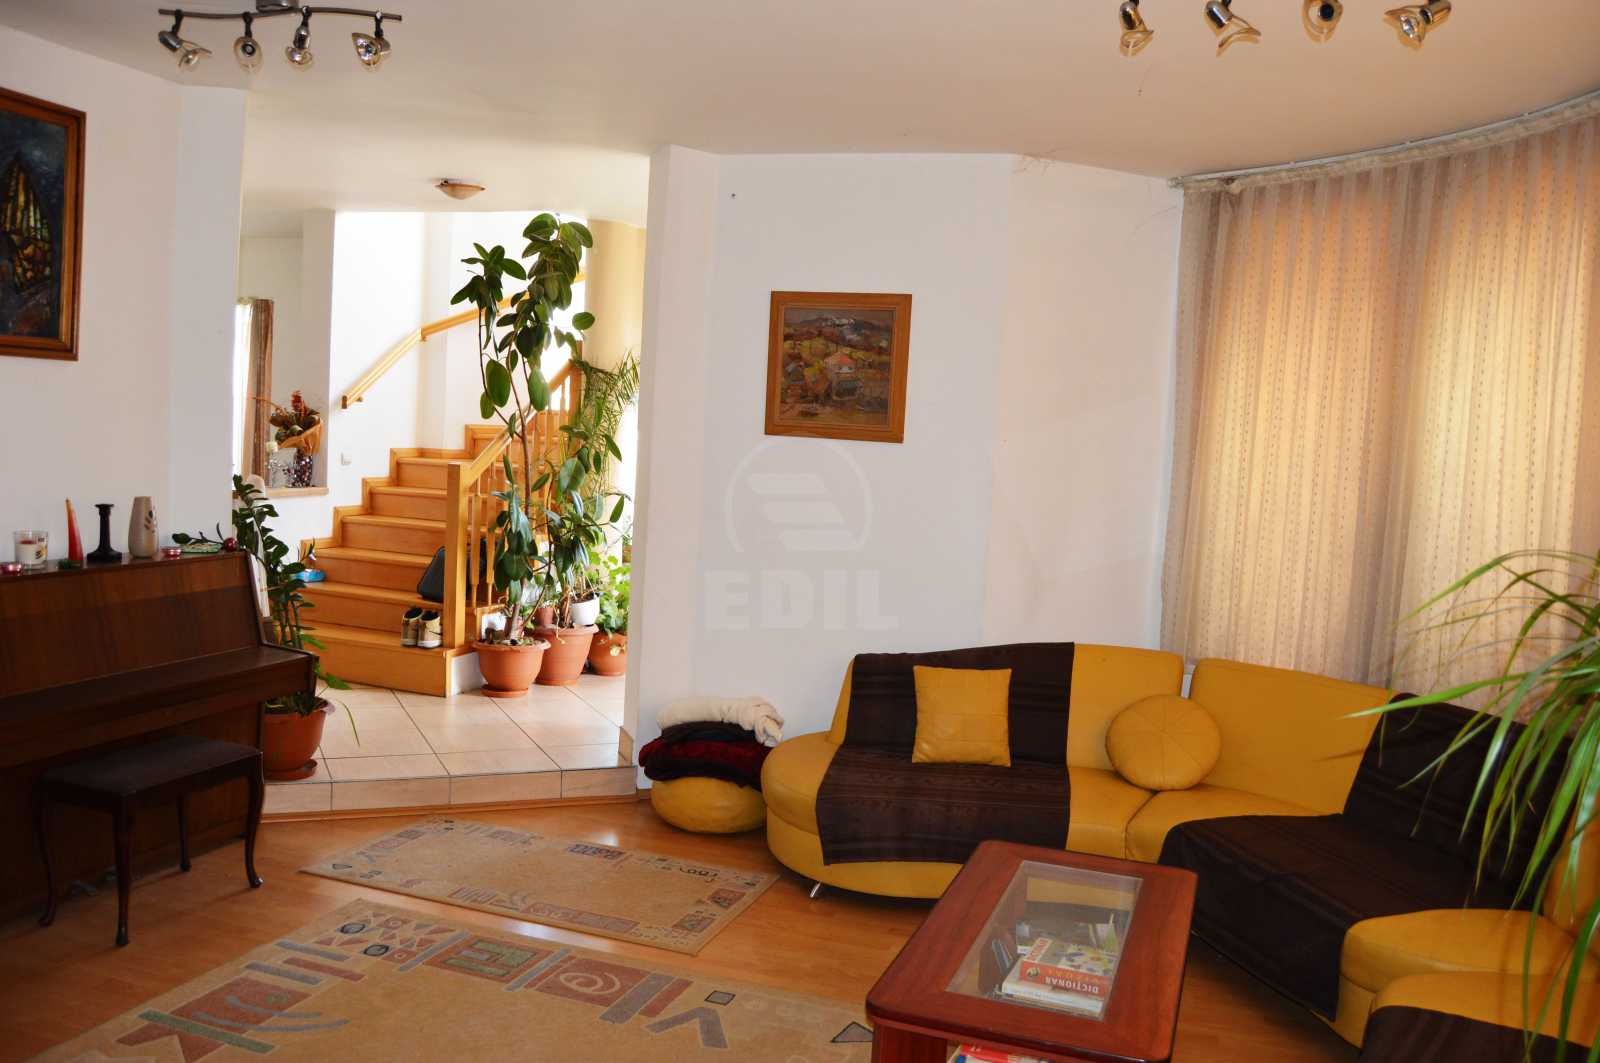 House for sale 5 rooms, CACJ285647-1